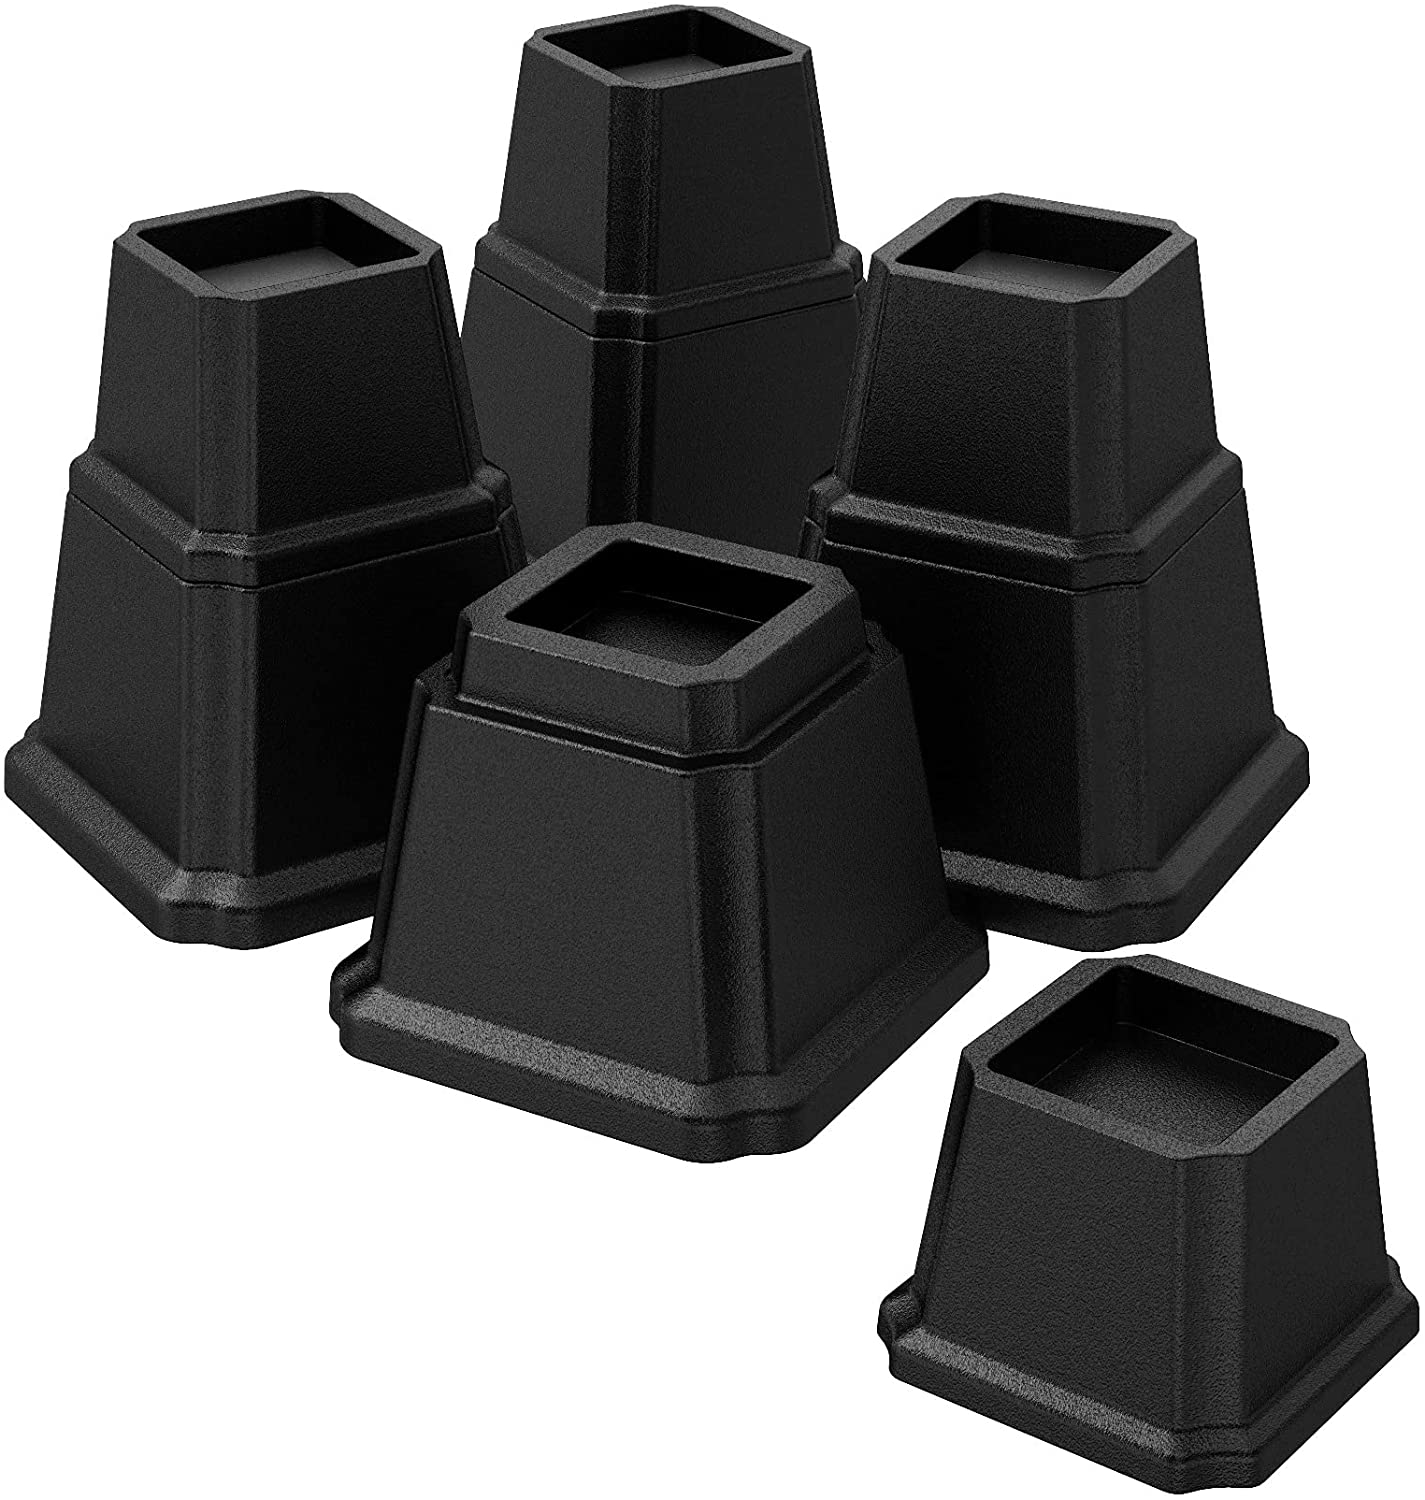 UUKING Furniture Bed Risers Heavy Duty Bed Elevators in Adjustable Heights of 8, 5 or 3 Inches, Set of 4 Lifts Up 1,500 lbs Riser for Sofa and Table, Black